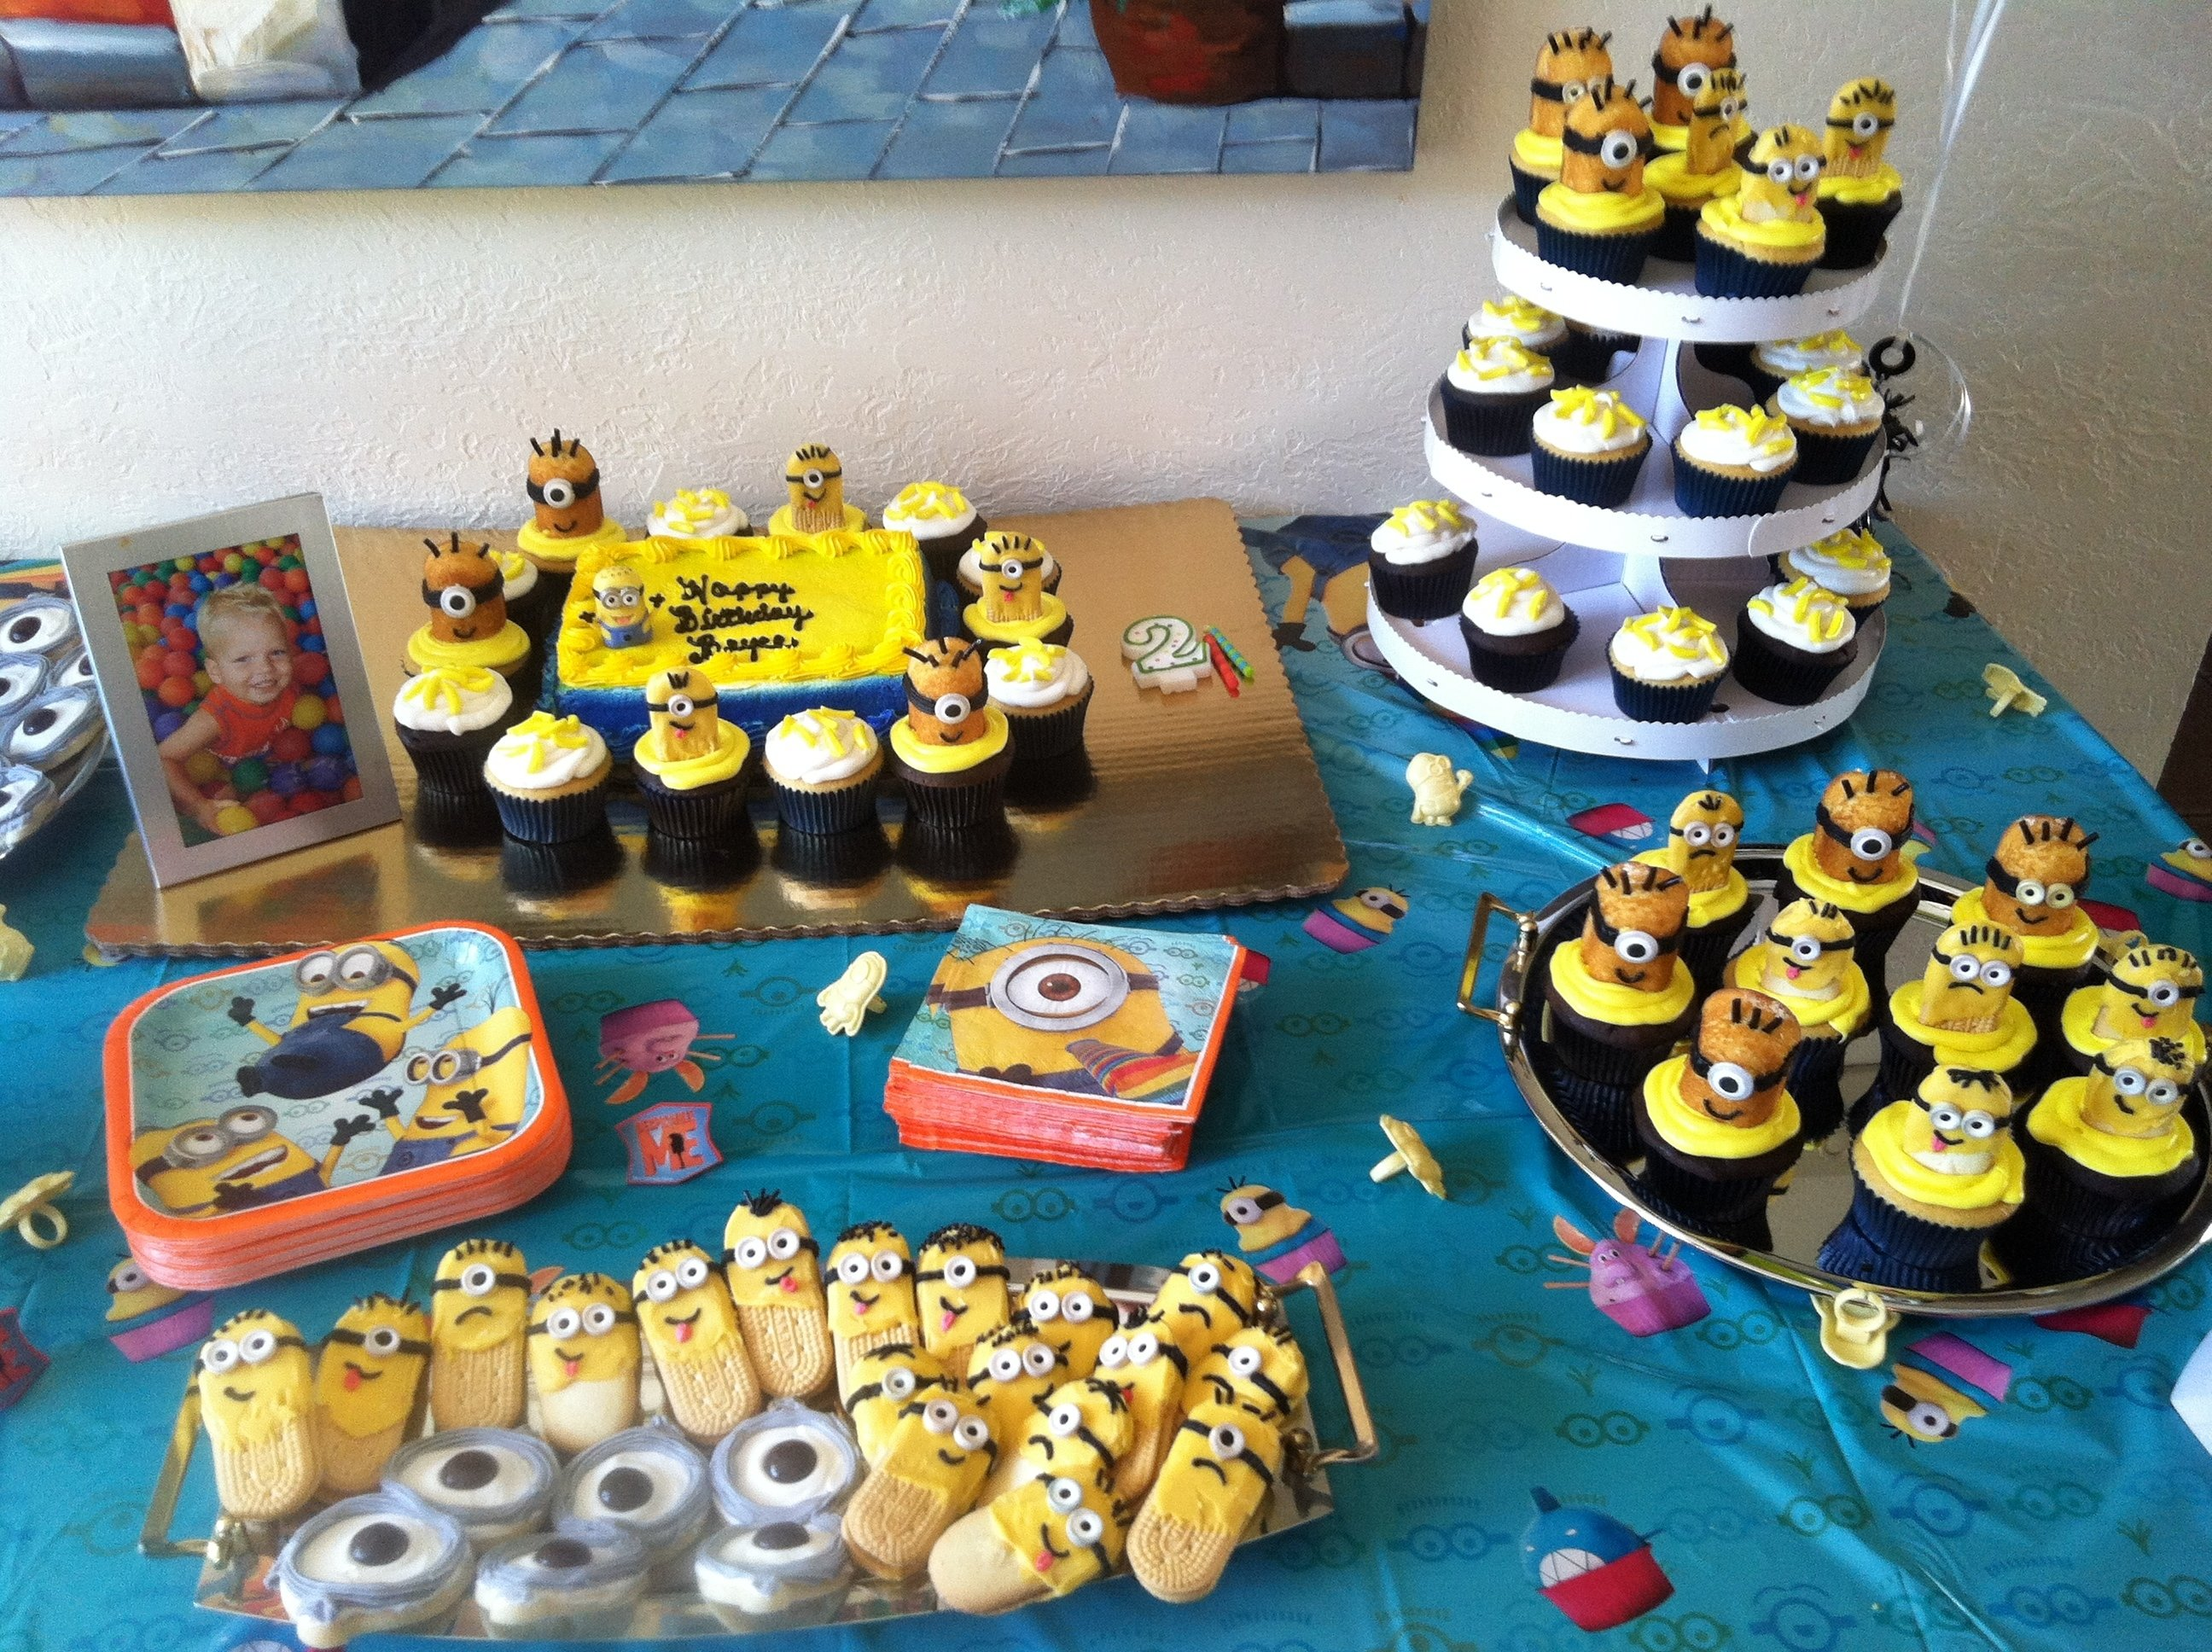 10 Most Recommended 2 Year Old Bday Party Ideas themes birthday 2 year old birthday party ideas on a budget also 2 2020